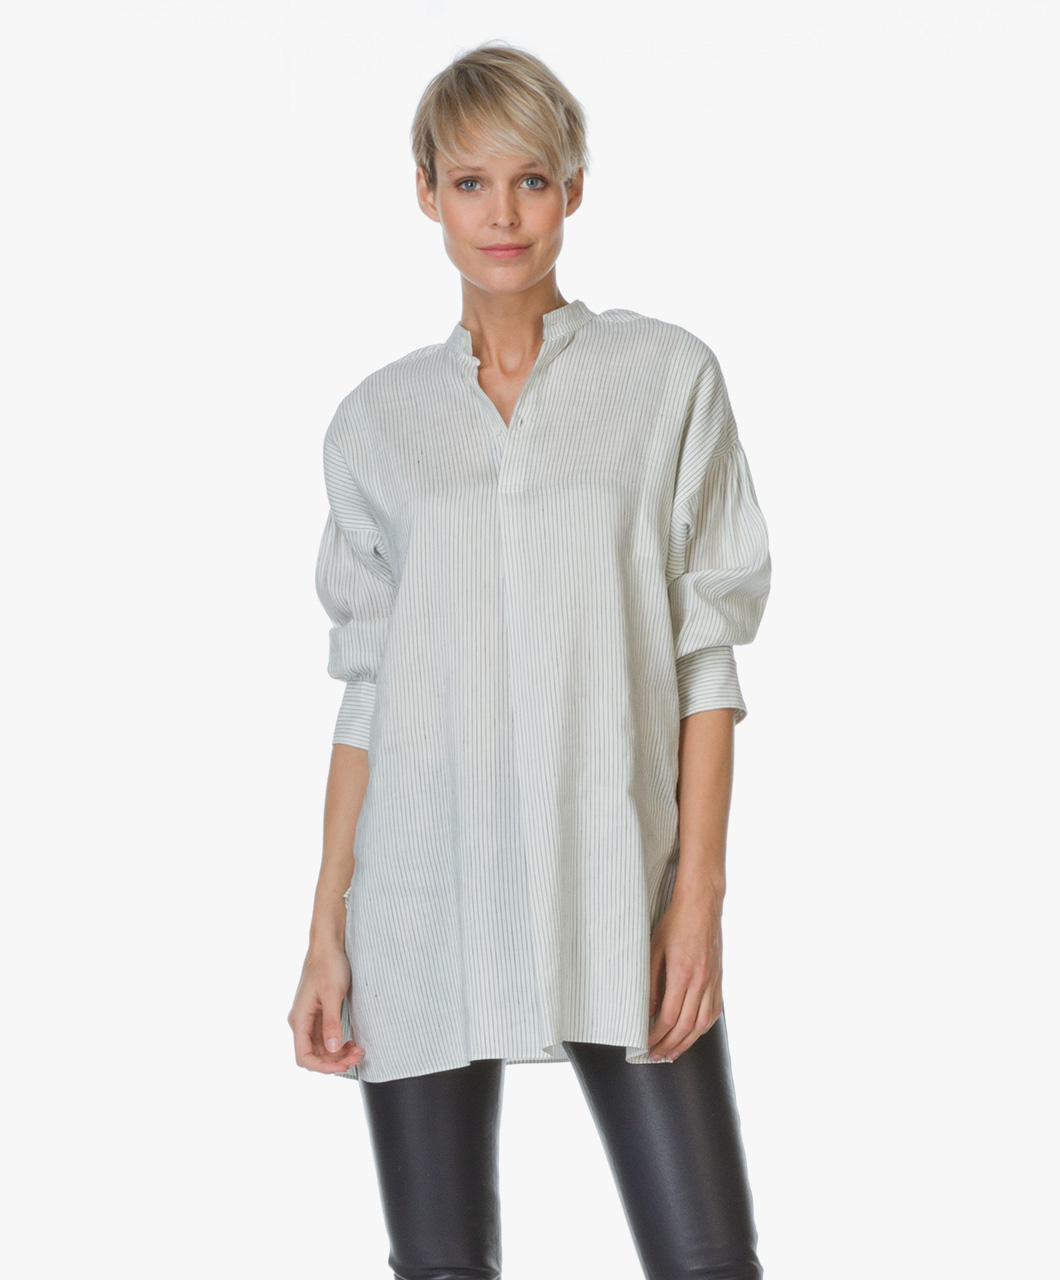 Image of Joseph Blouse Phila in off white and black